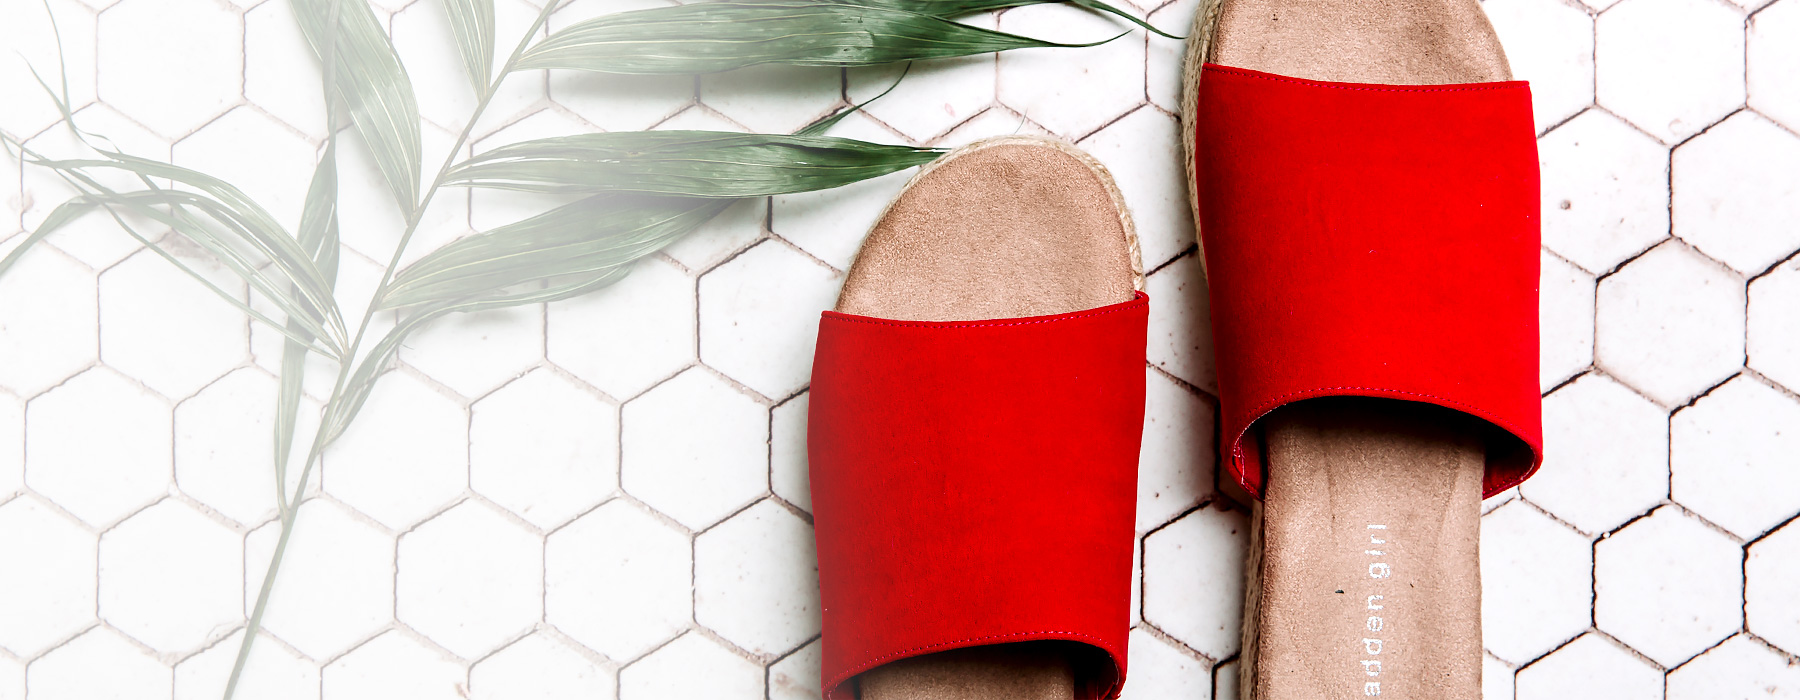 A pair of red sandals on a tile floor